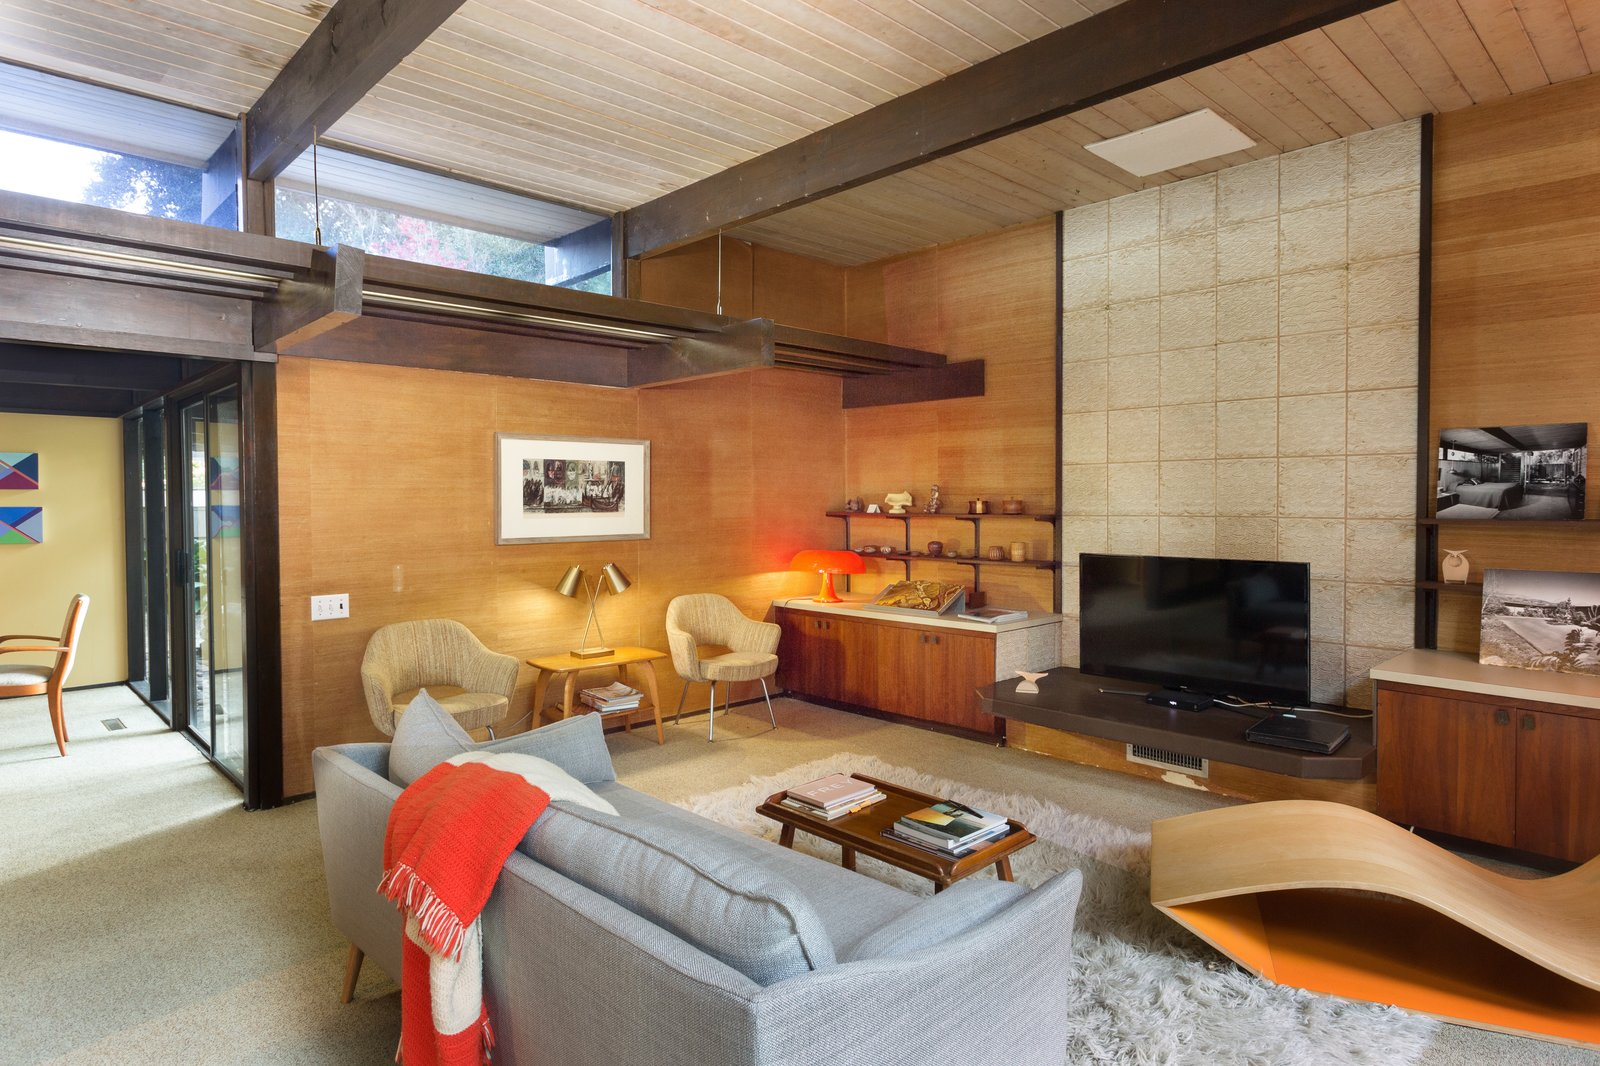 Clerestory windows allow more light to stream into the den.  Photo 5 of 11 in Snag This Midcentury Stunner in Southern California For $799K